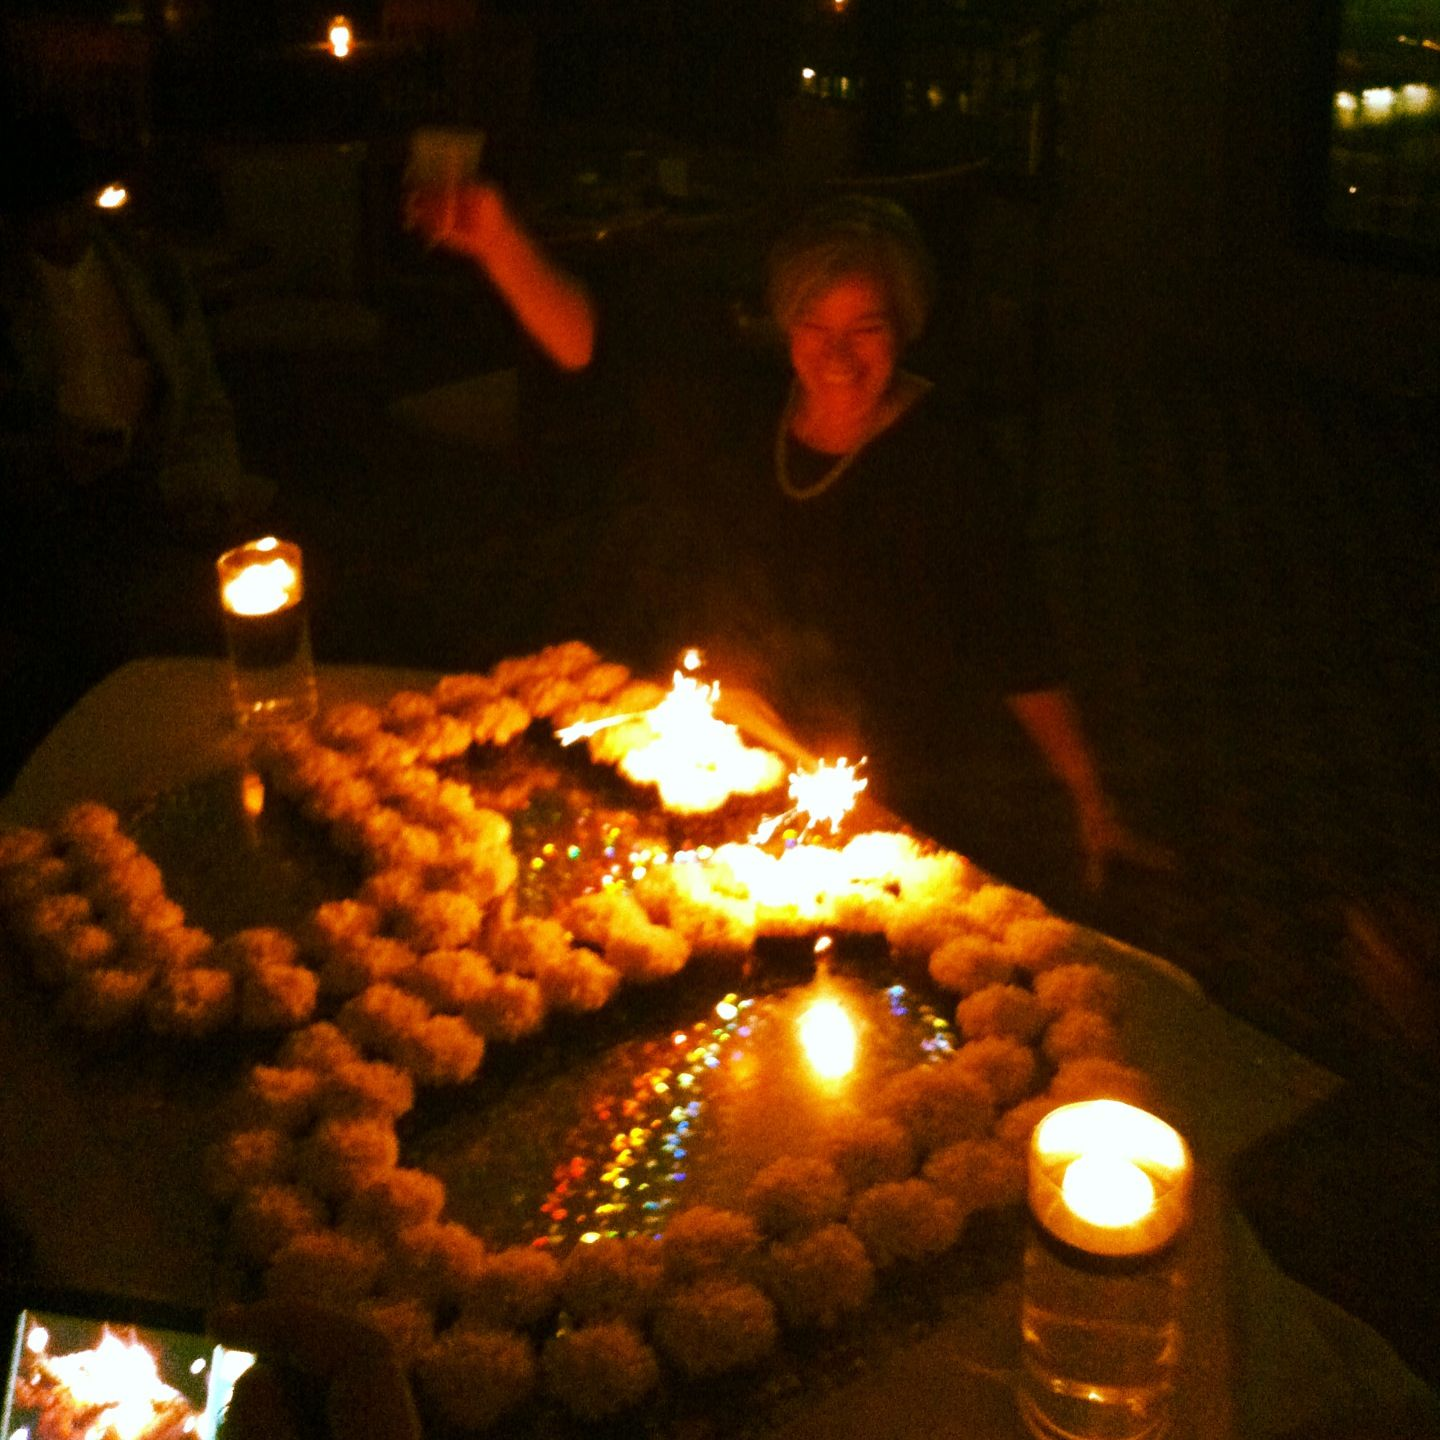 50th Birthday Celebration Floating Candles Sparkling And Lots Of Cupcakes Displayed In The Number 50